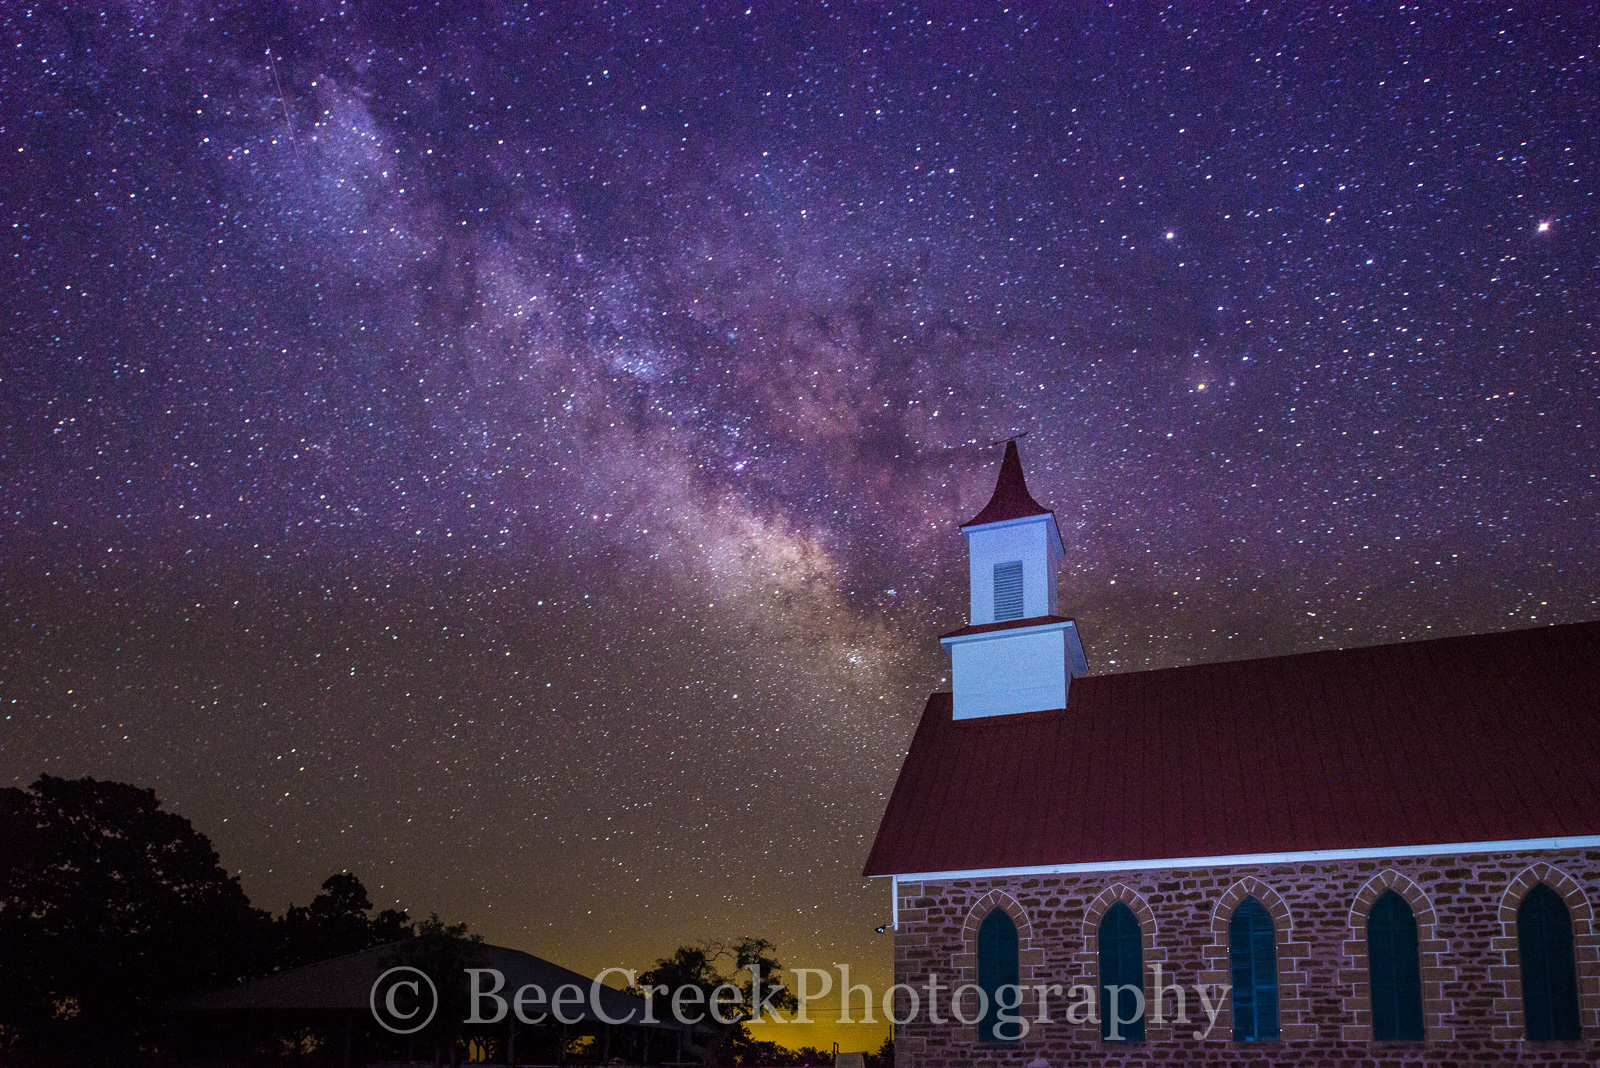 astronomy photography, celestial, church, dark, dark skies, galaxies, galaxy, heavently, landscape, light pollution, milky way, milkyway, night, night photography, night skies, night stars, star photo, photo